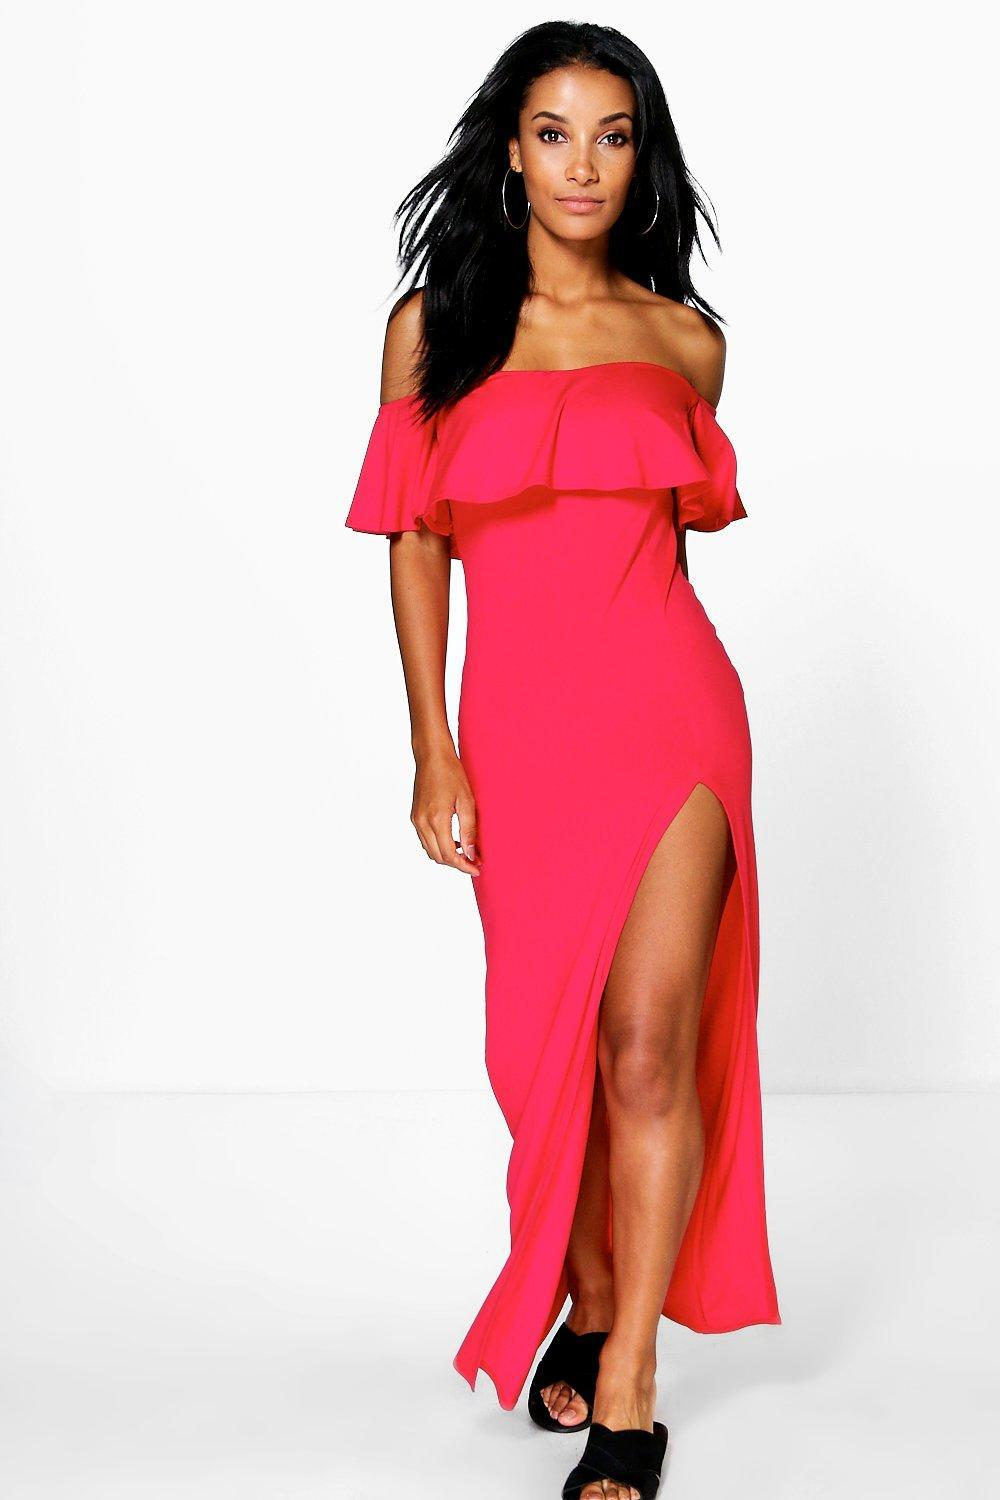 Ruffle Split Side Maxi Dress Red - neckline: off the shoulder; pattern: plain; style: maxi dress; hip detail: draws attention to hips; bust detail: subtle bust detail; predominant colour: hot pink; length: floor length; fit: body skimming; fibres: viscose/rayon - stretch; sleeve length: short sleeve; sleeve style: standard; occasions: holiday; pattern type: fabric; texture group: jersey - stretchy/drapey; season: s/s 2016; wardrobe: holiday